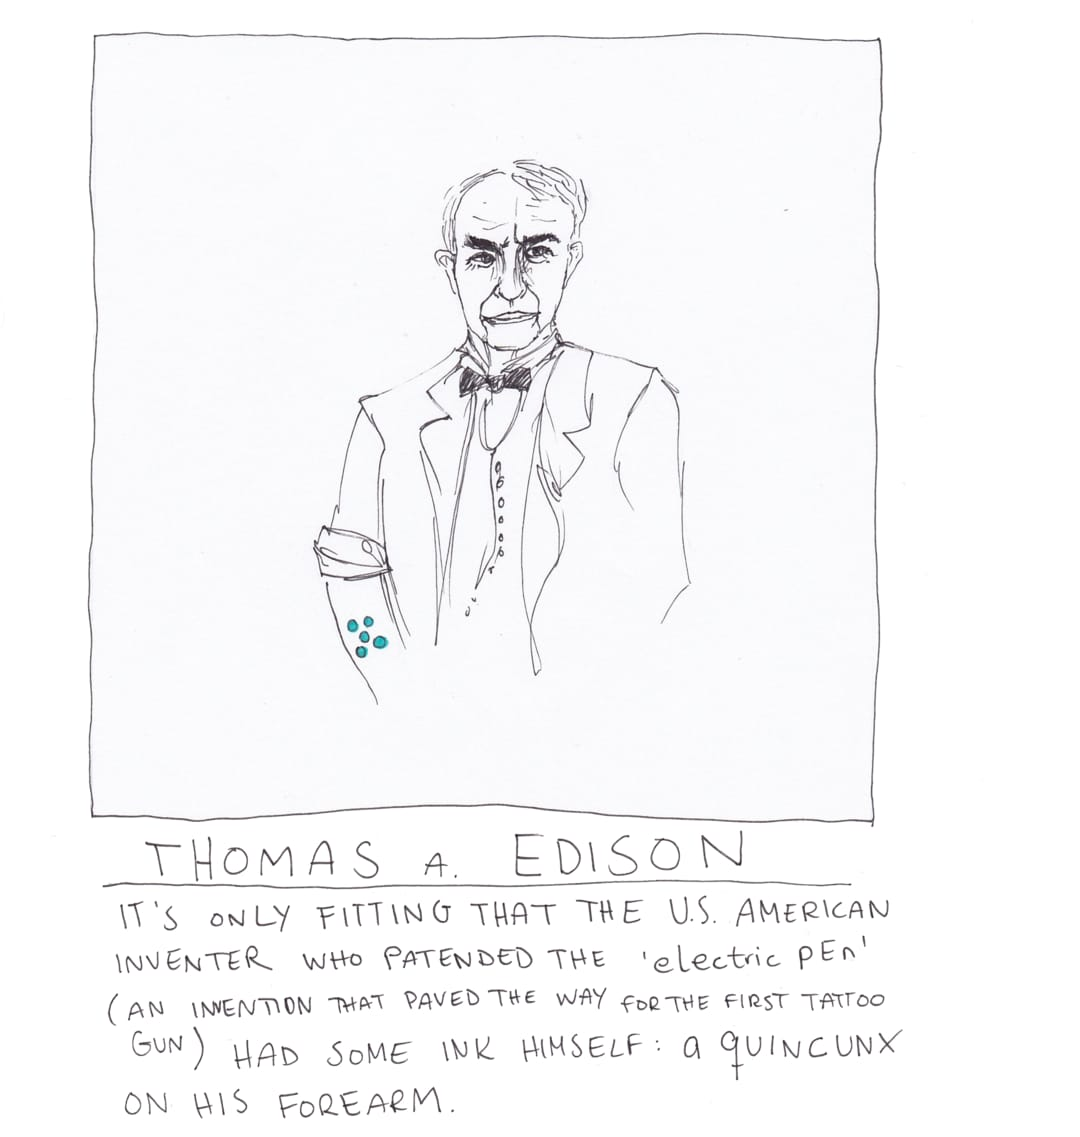 Thomas Edison tattoo